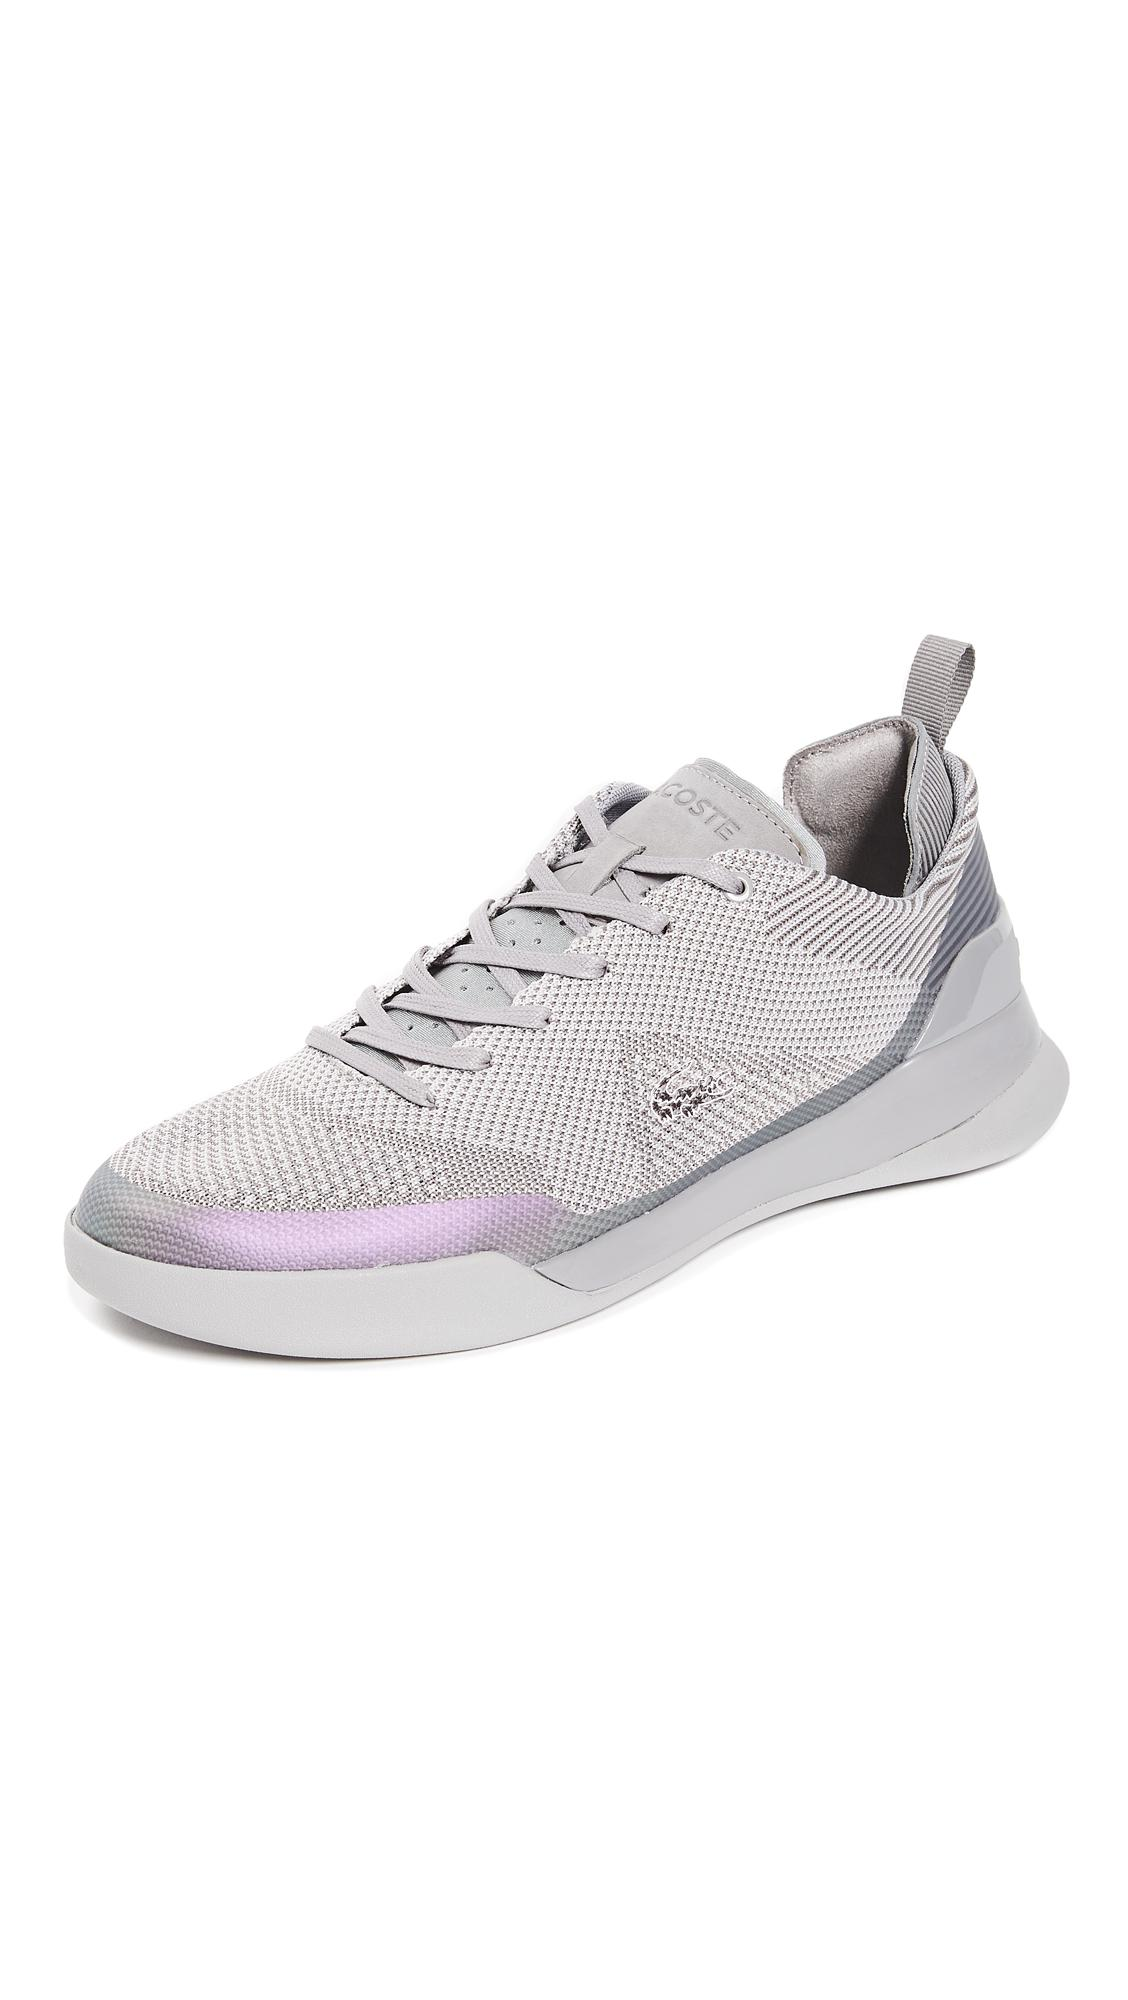 64a6a6e792858a Lacoste Lt Dual Elite Sneakers in Gray for Men - Lyst